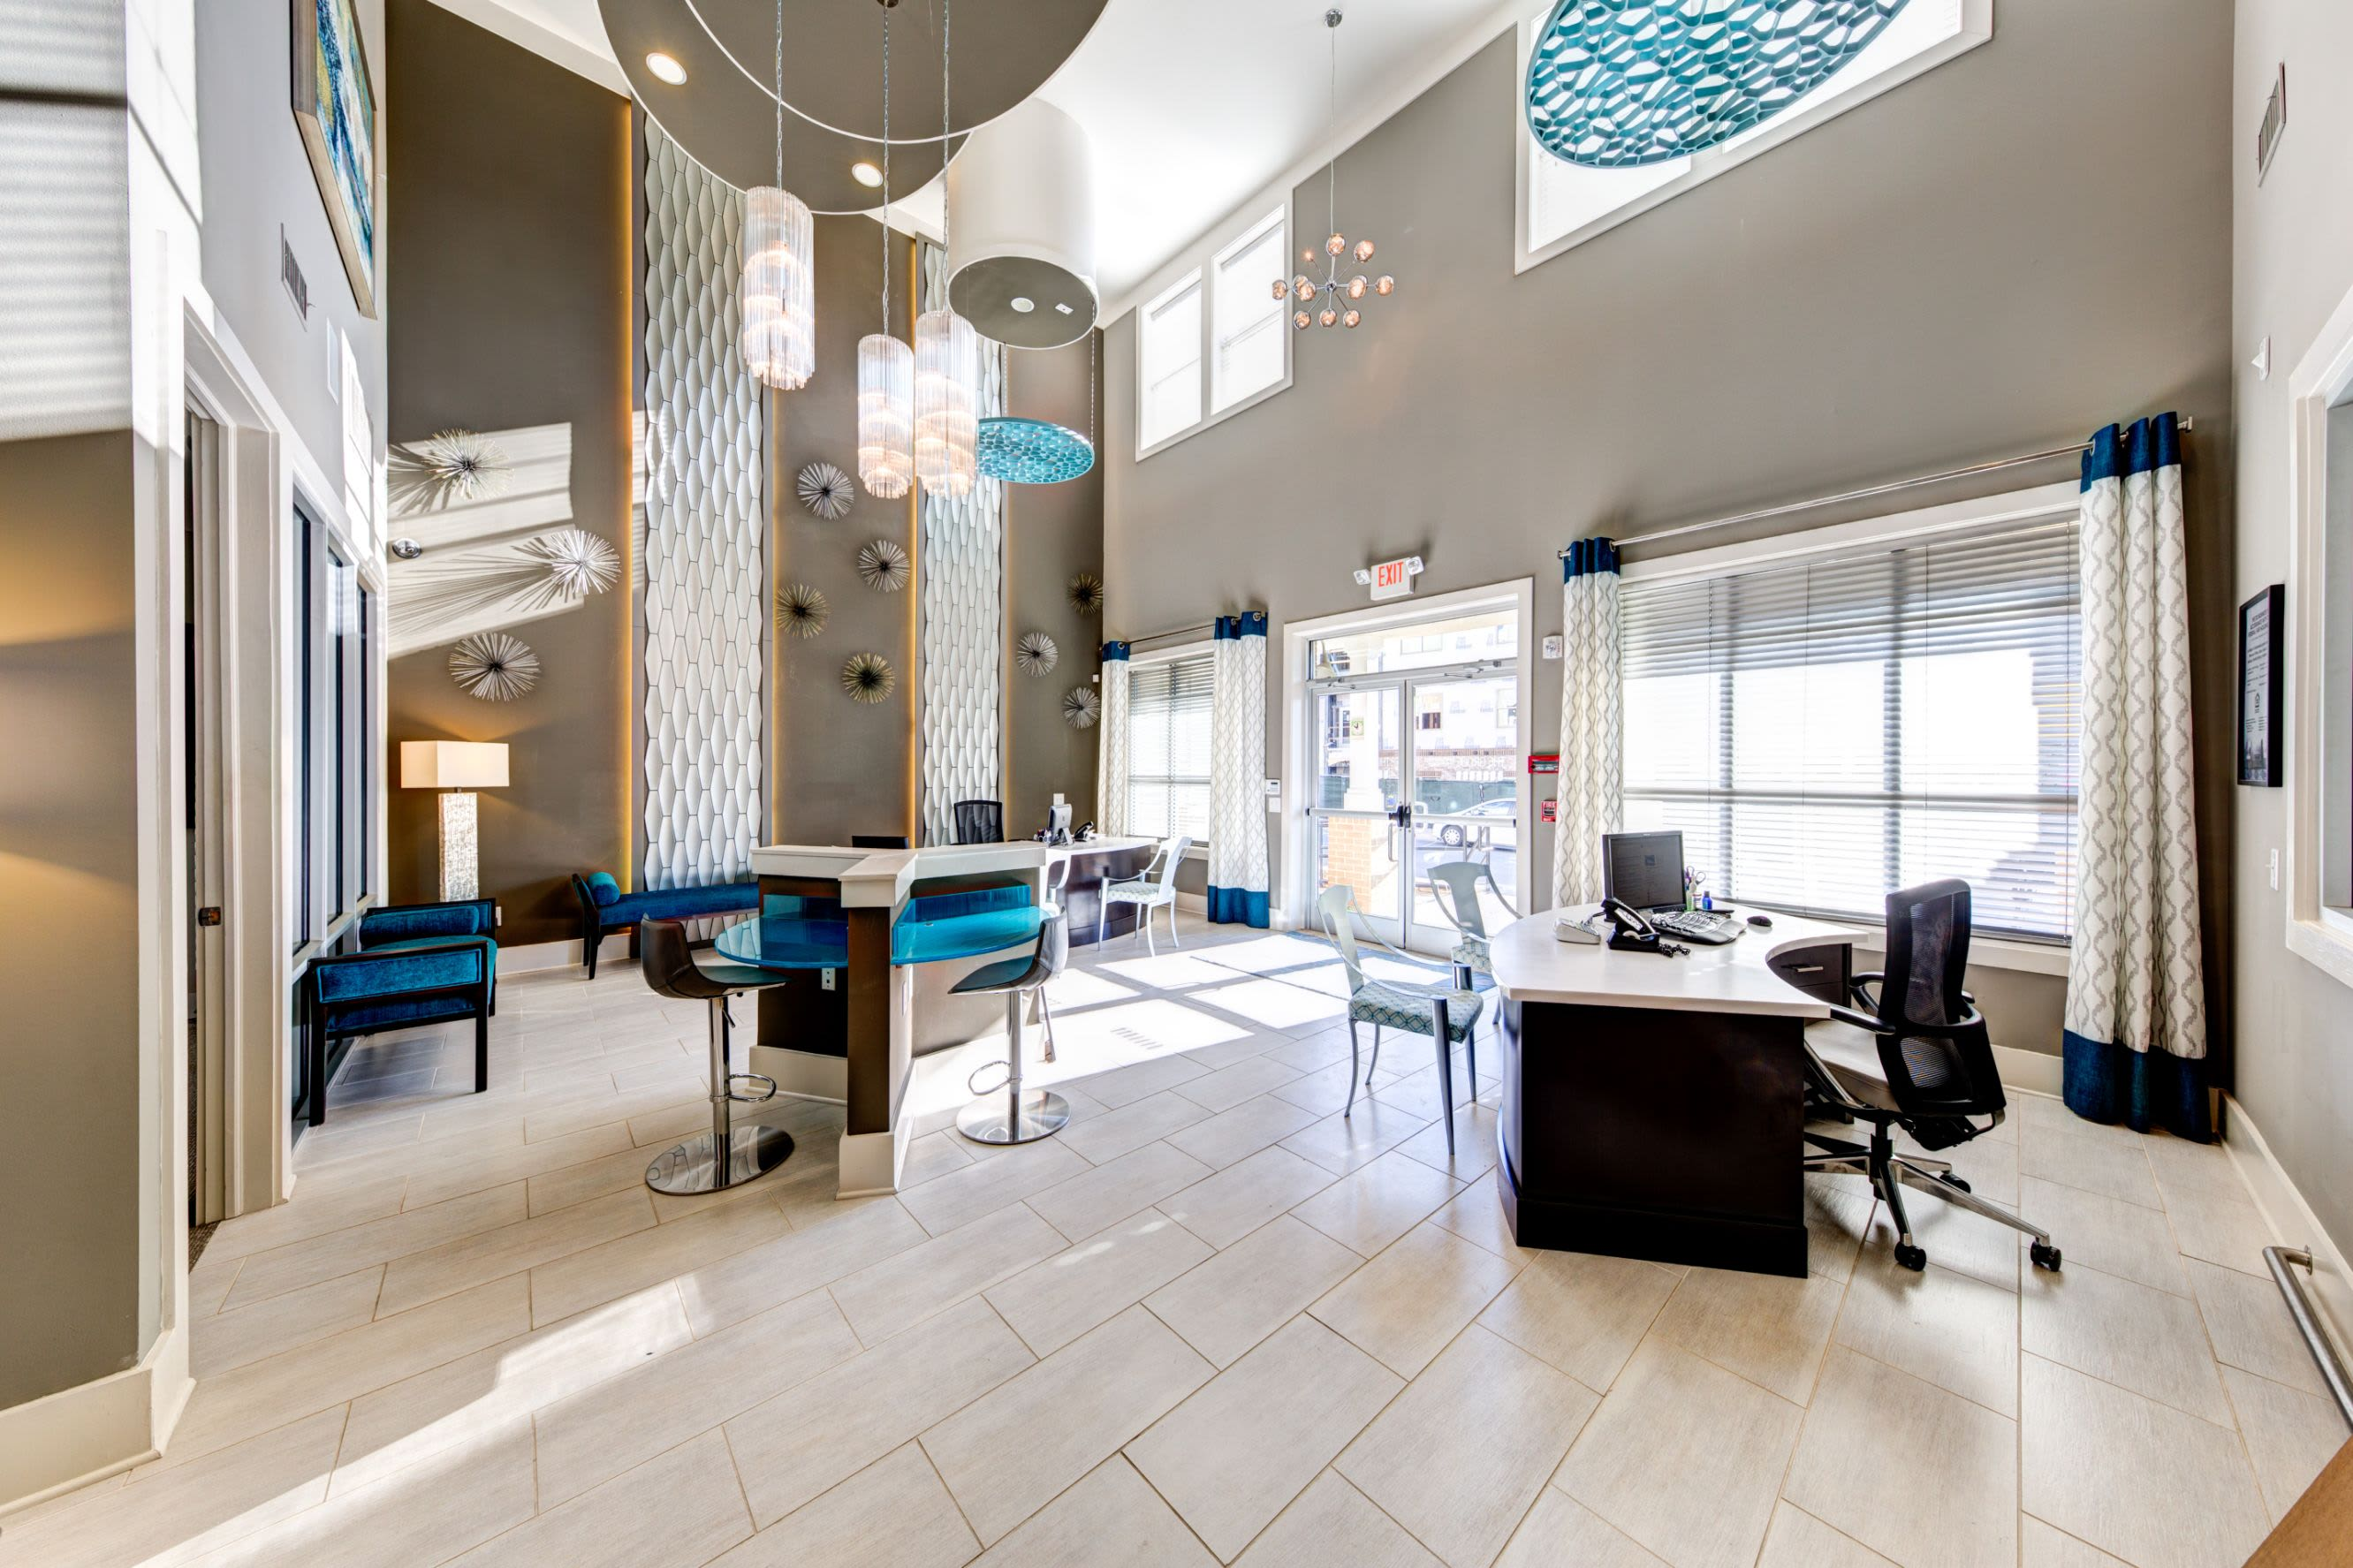 Lobby with large windows at Marquis at Morrison Plantation in Mooresville, North Carolina